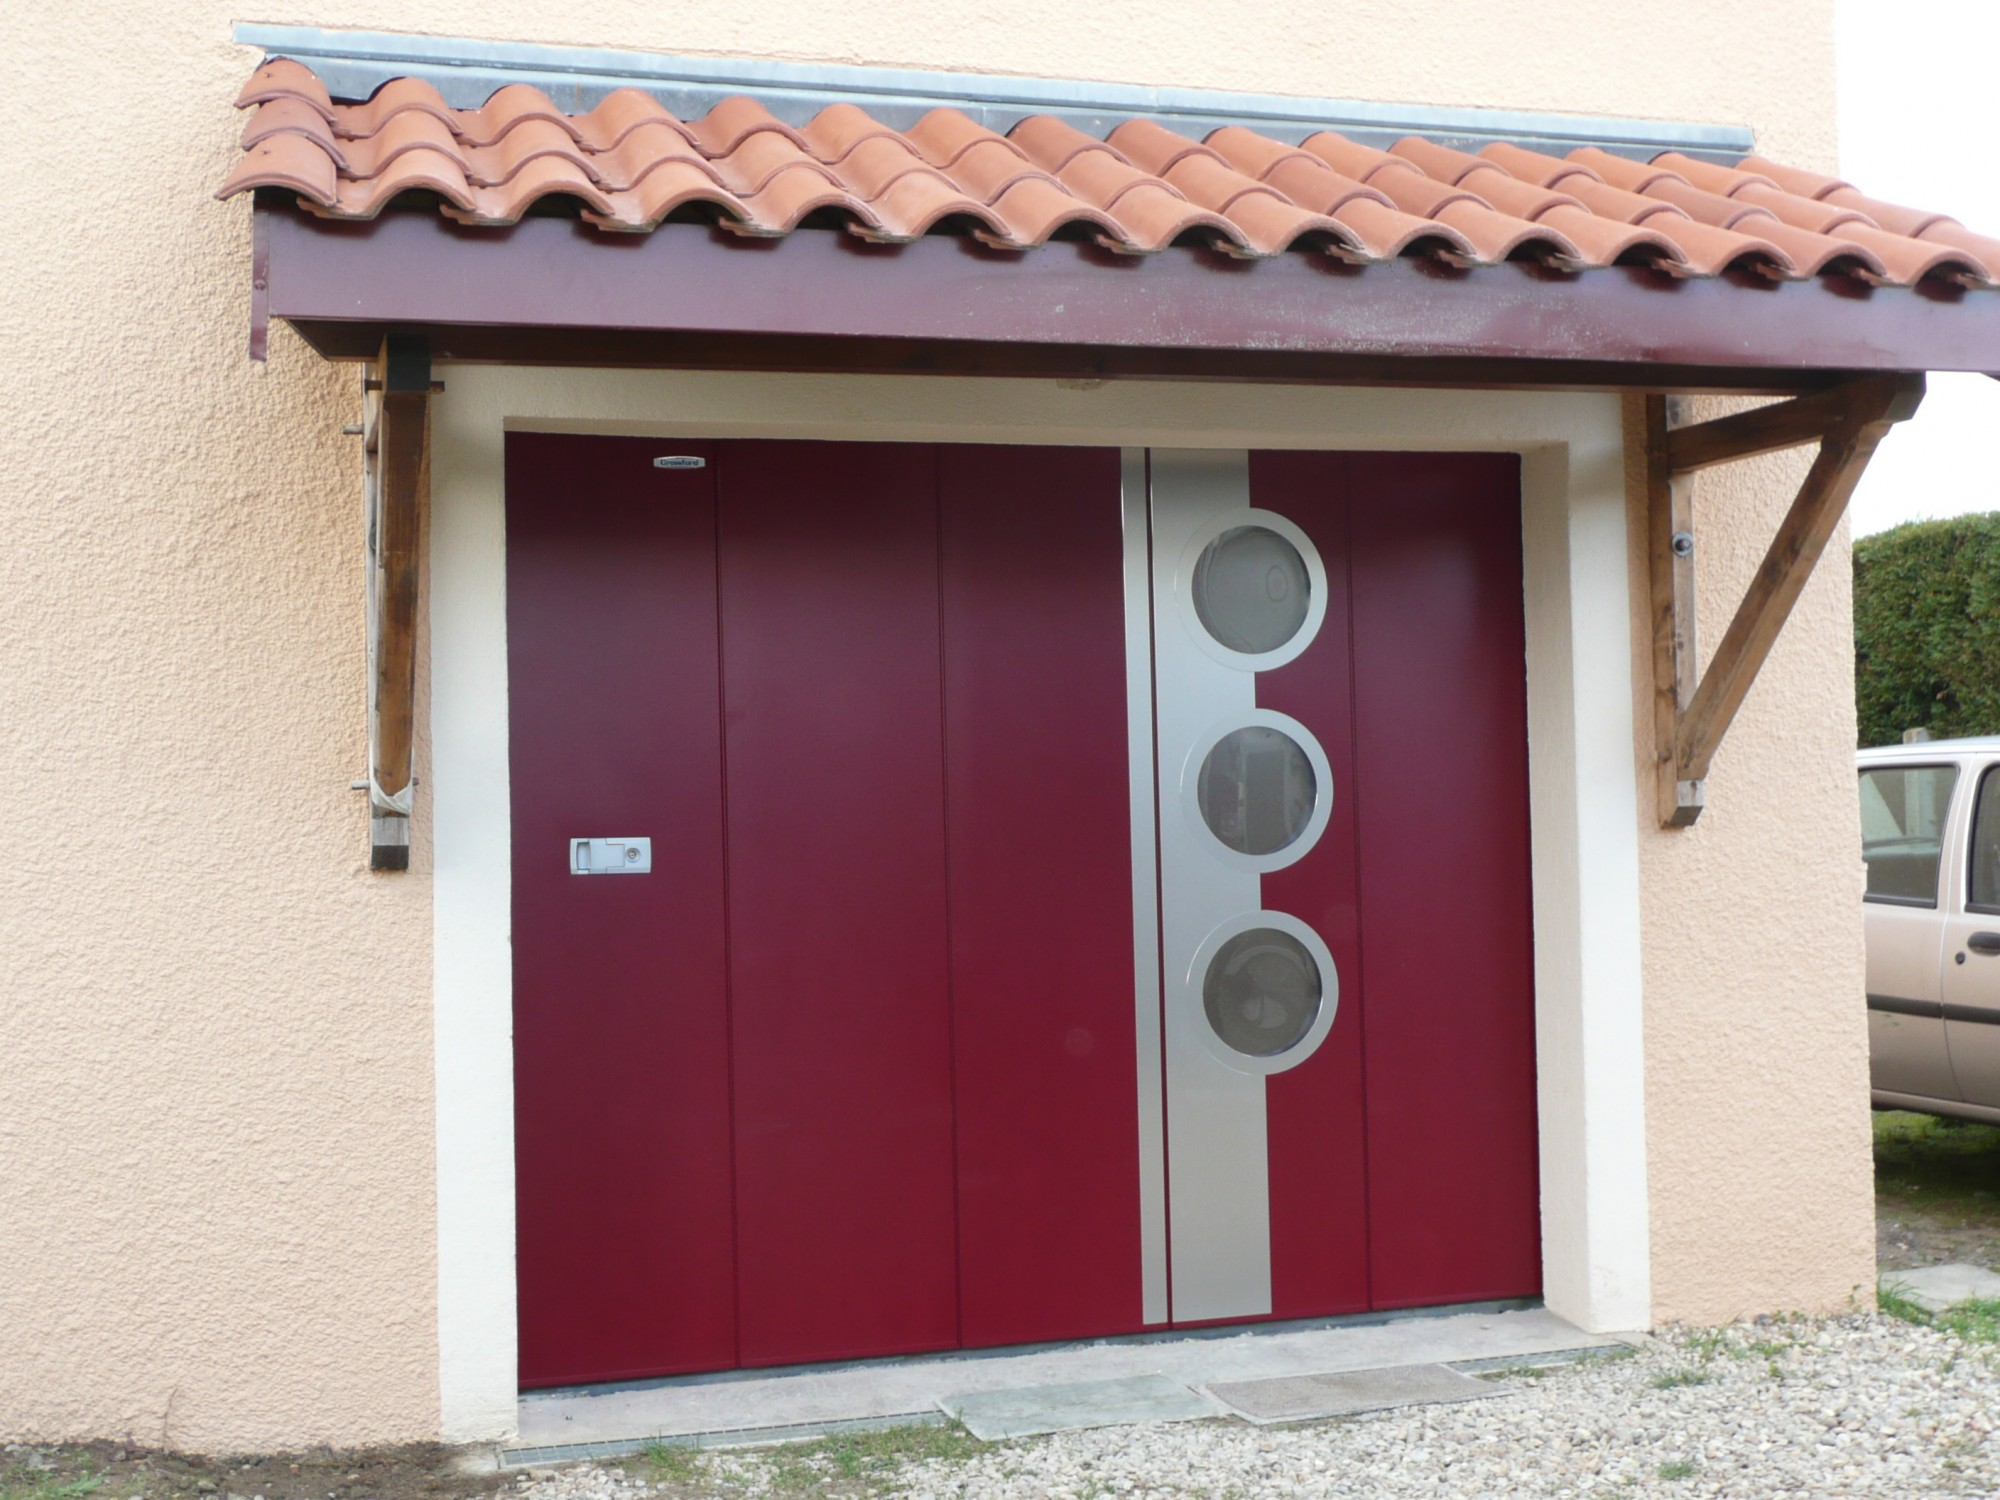 Installateur hormann de portes de garages coulissantes laterales isol es automatiques acces for Porte de garage coulissante motorisee